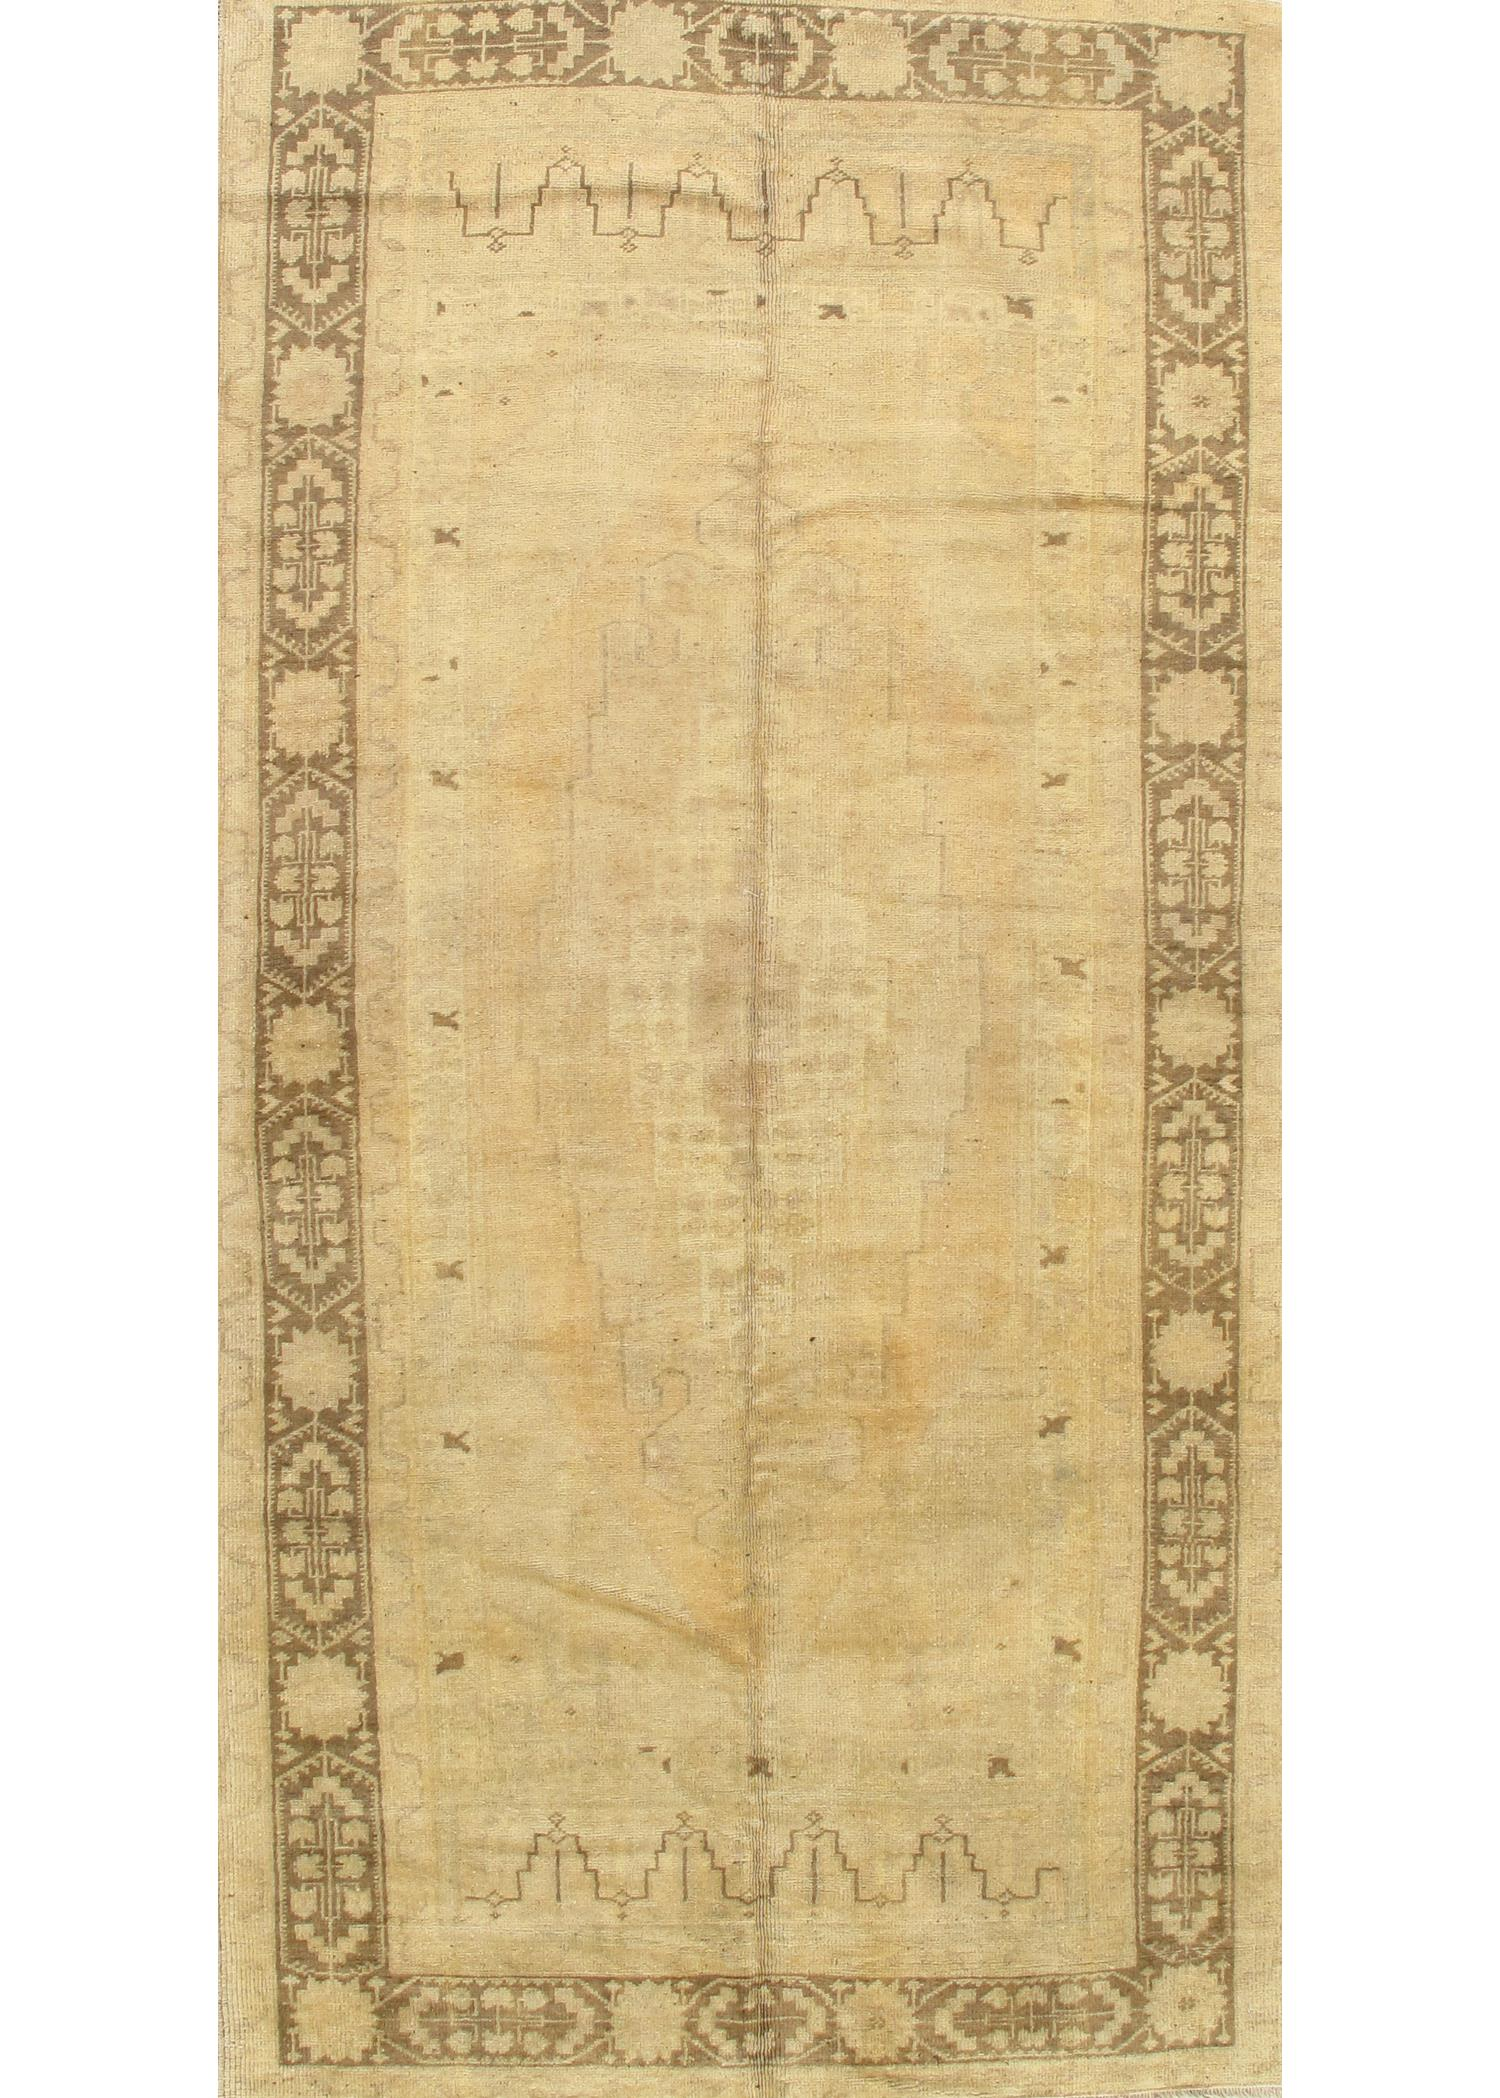 Antique Khotan Rug, 5X9